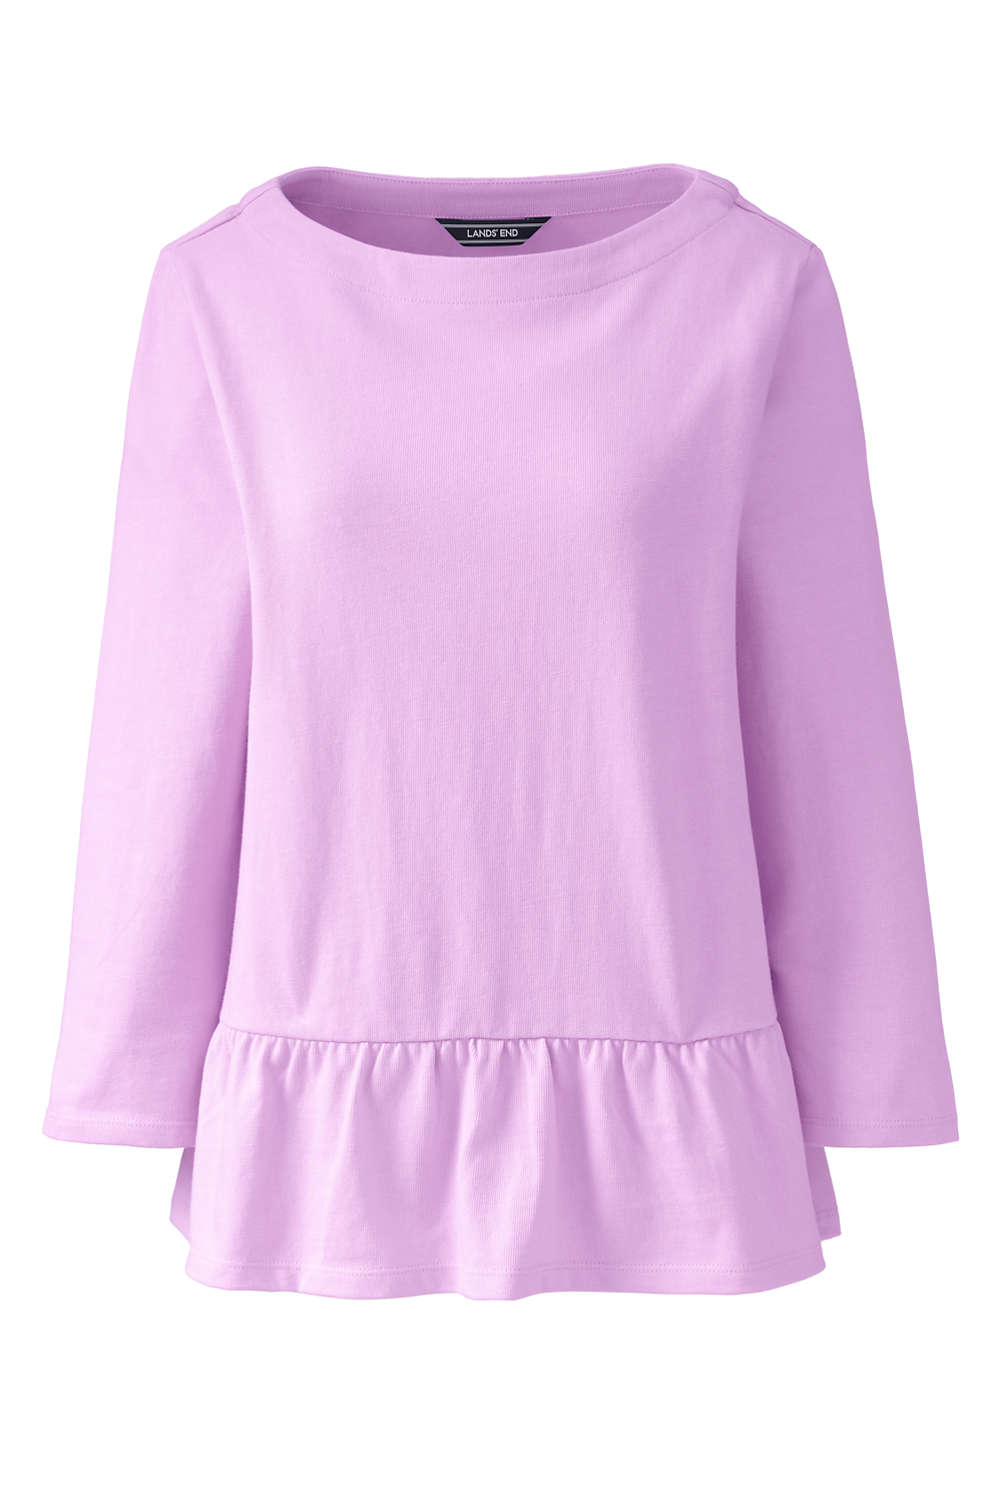 b998b9014b187 Women s Plus Size 3 4 Sleeve Boatneck Peplum Top from Lands  End